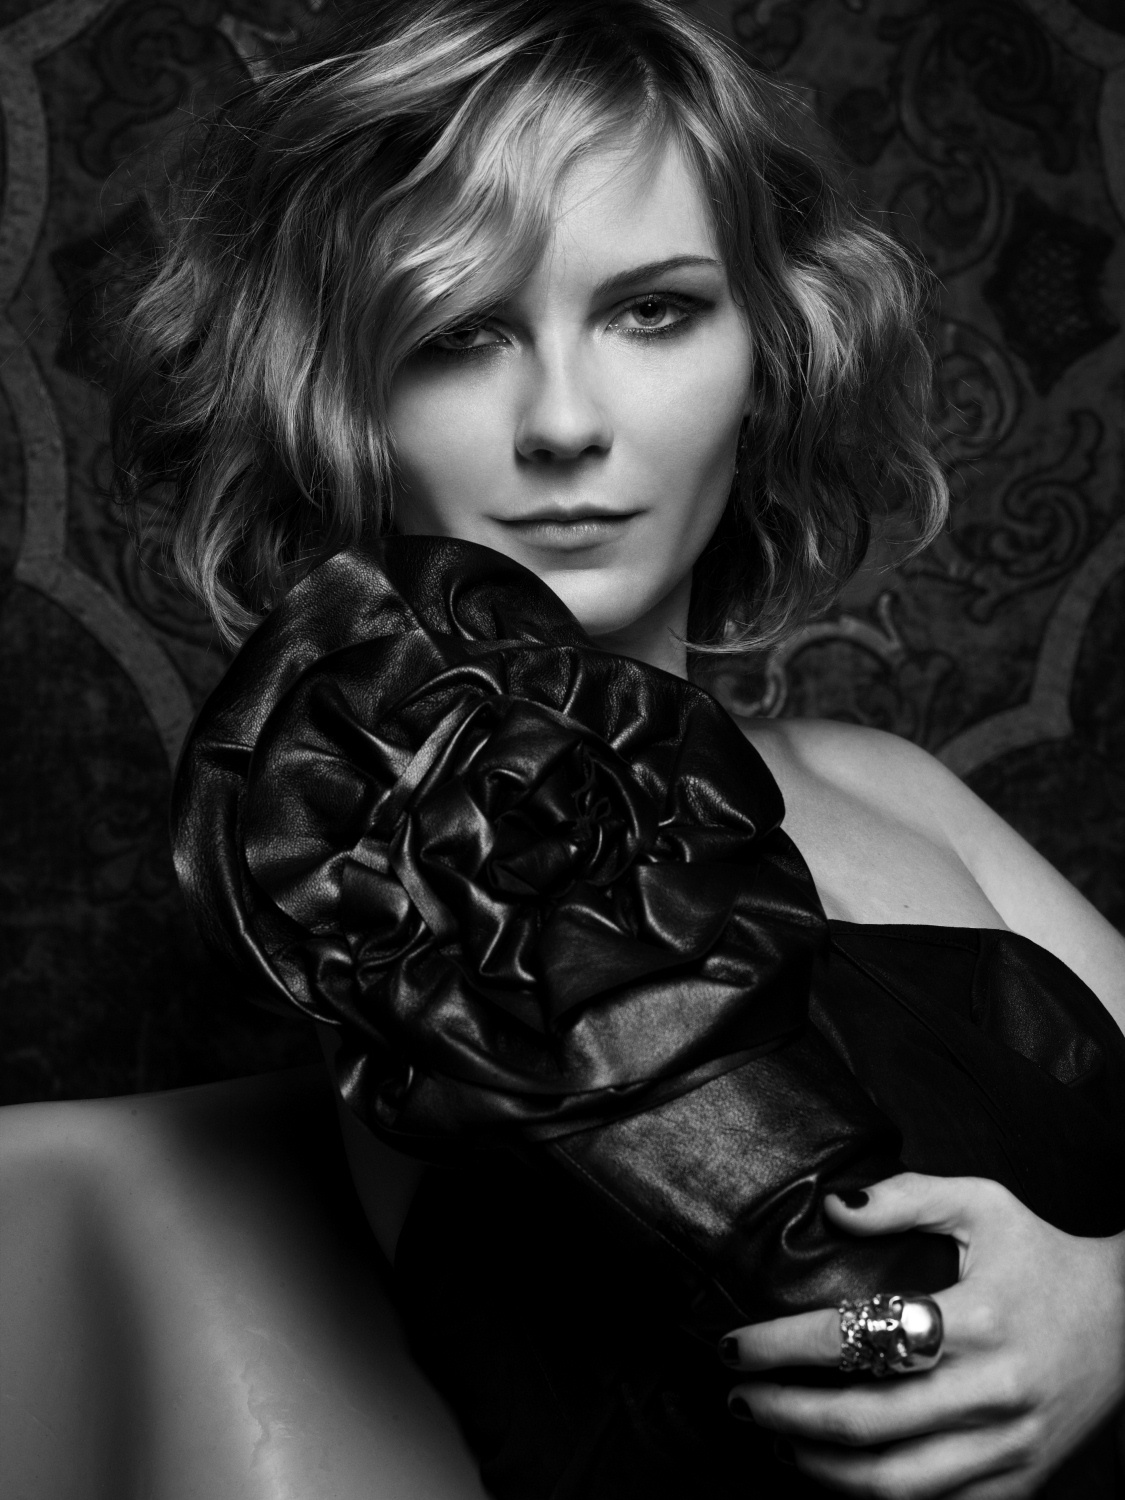 Kirsten Dunst monochrome HD Wallpaper